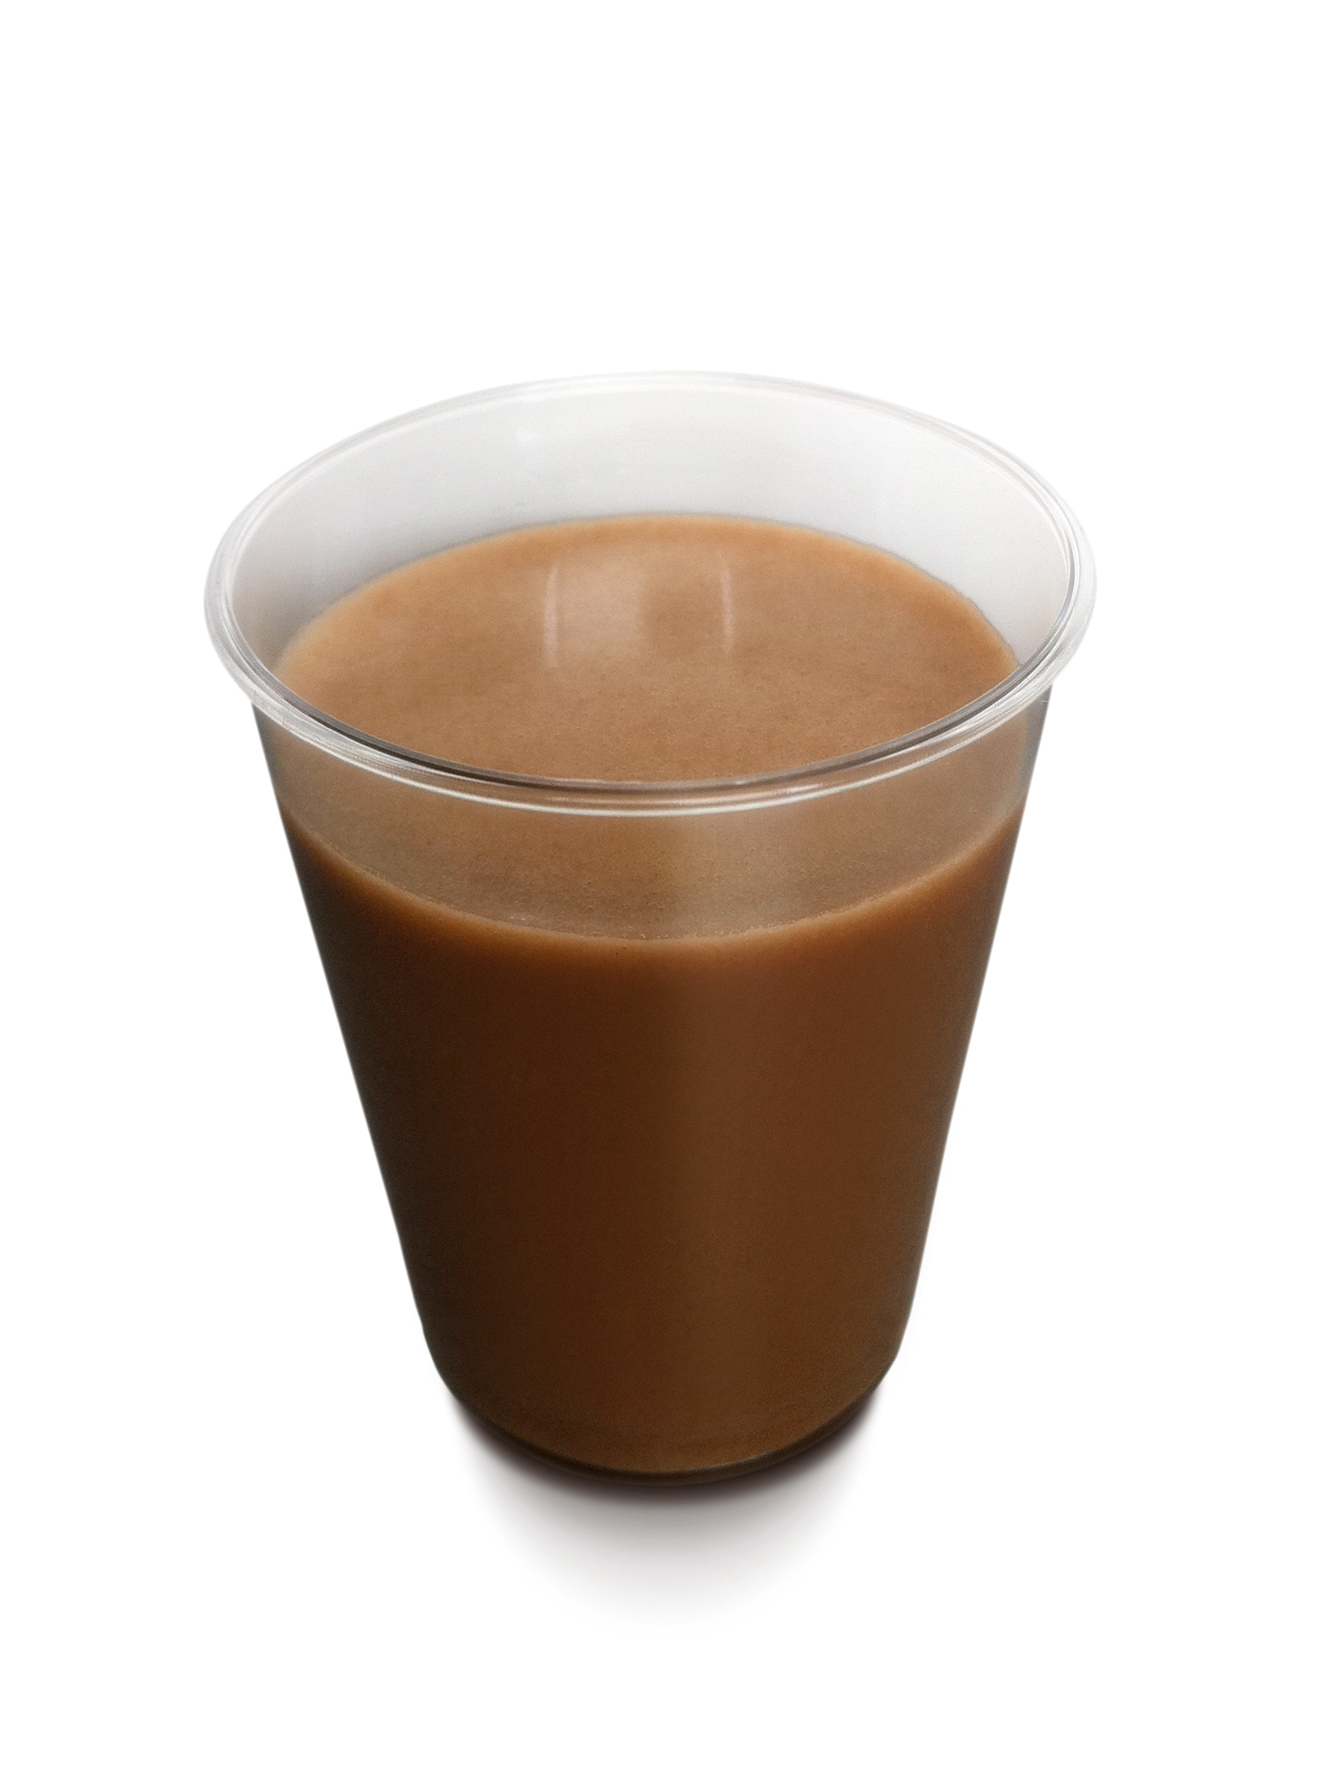 Can Chocolate Milk Cause Cancer